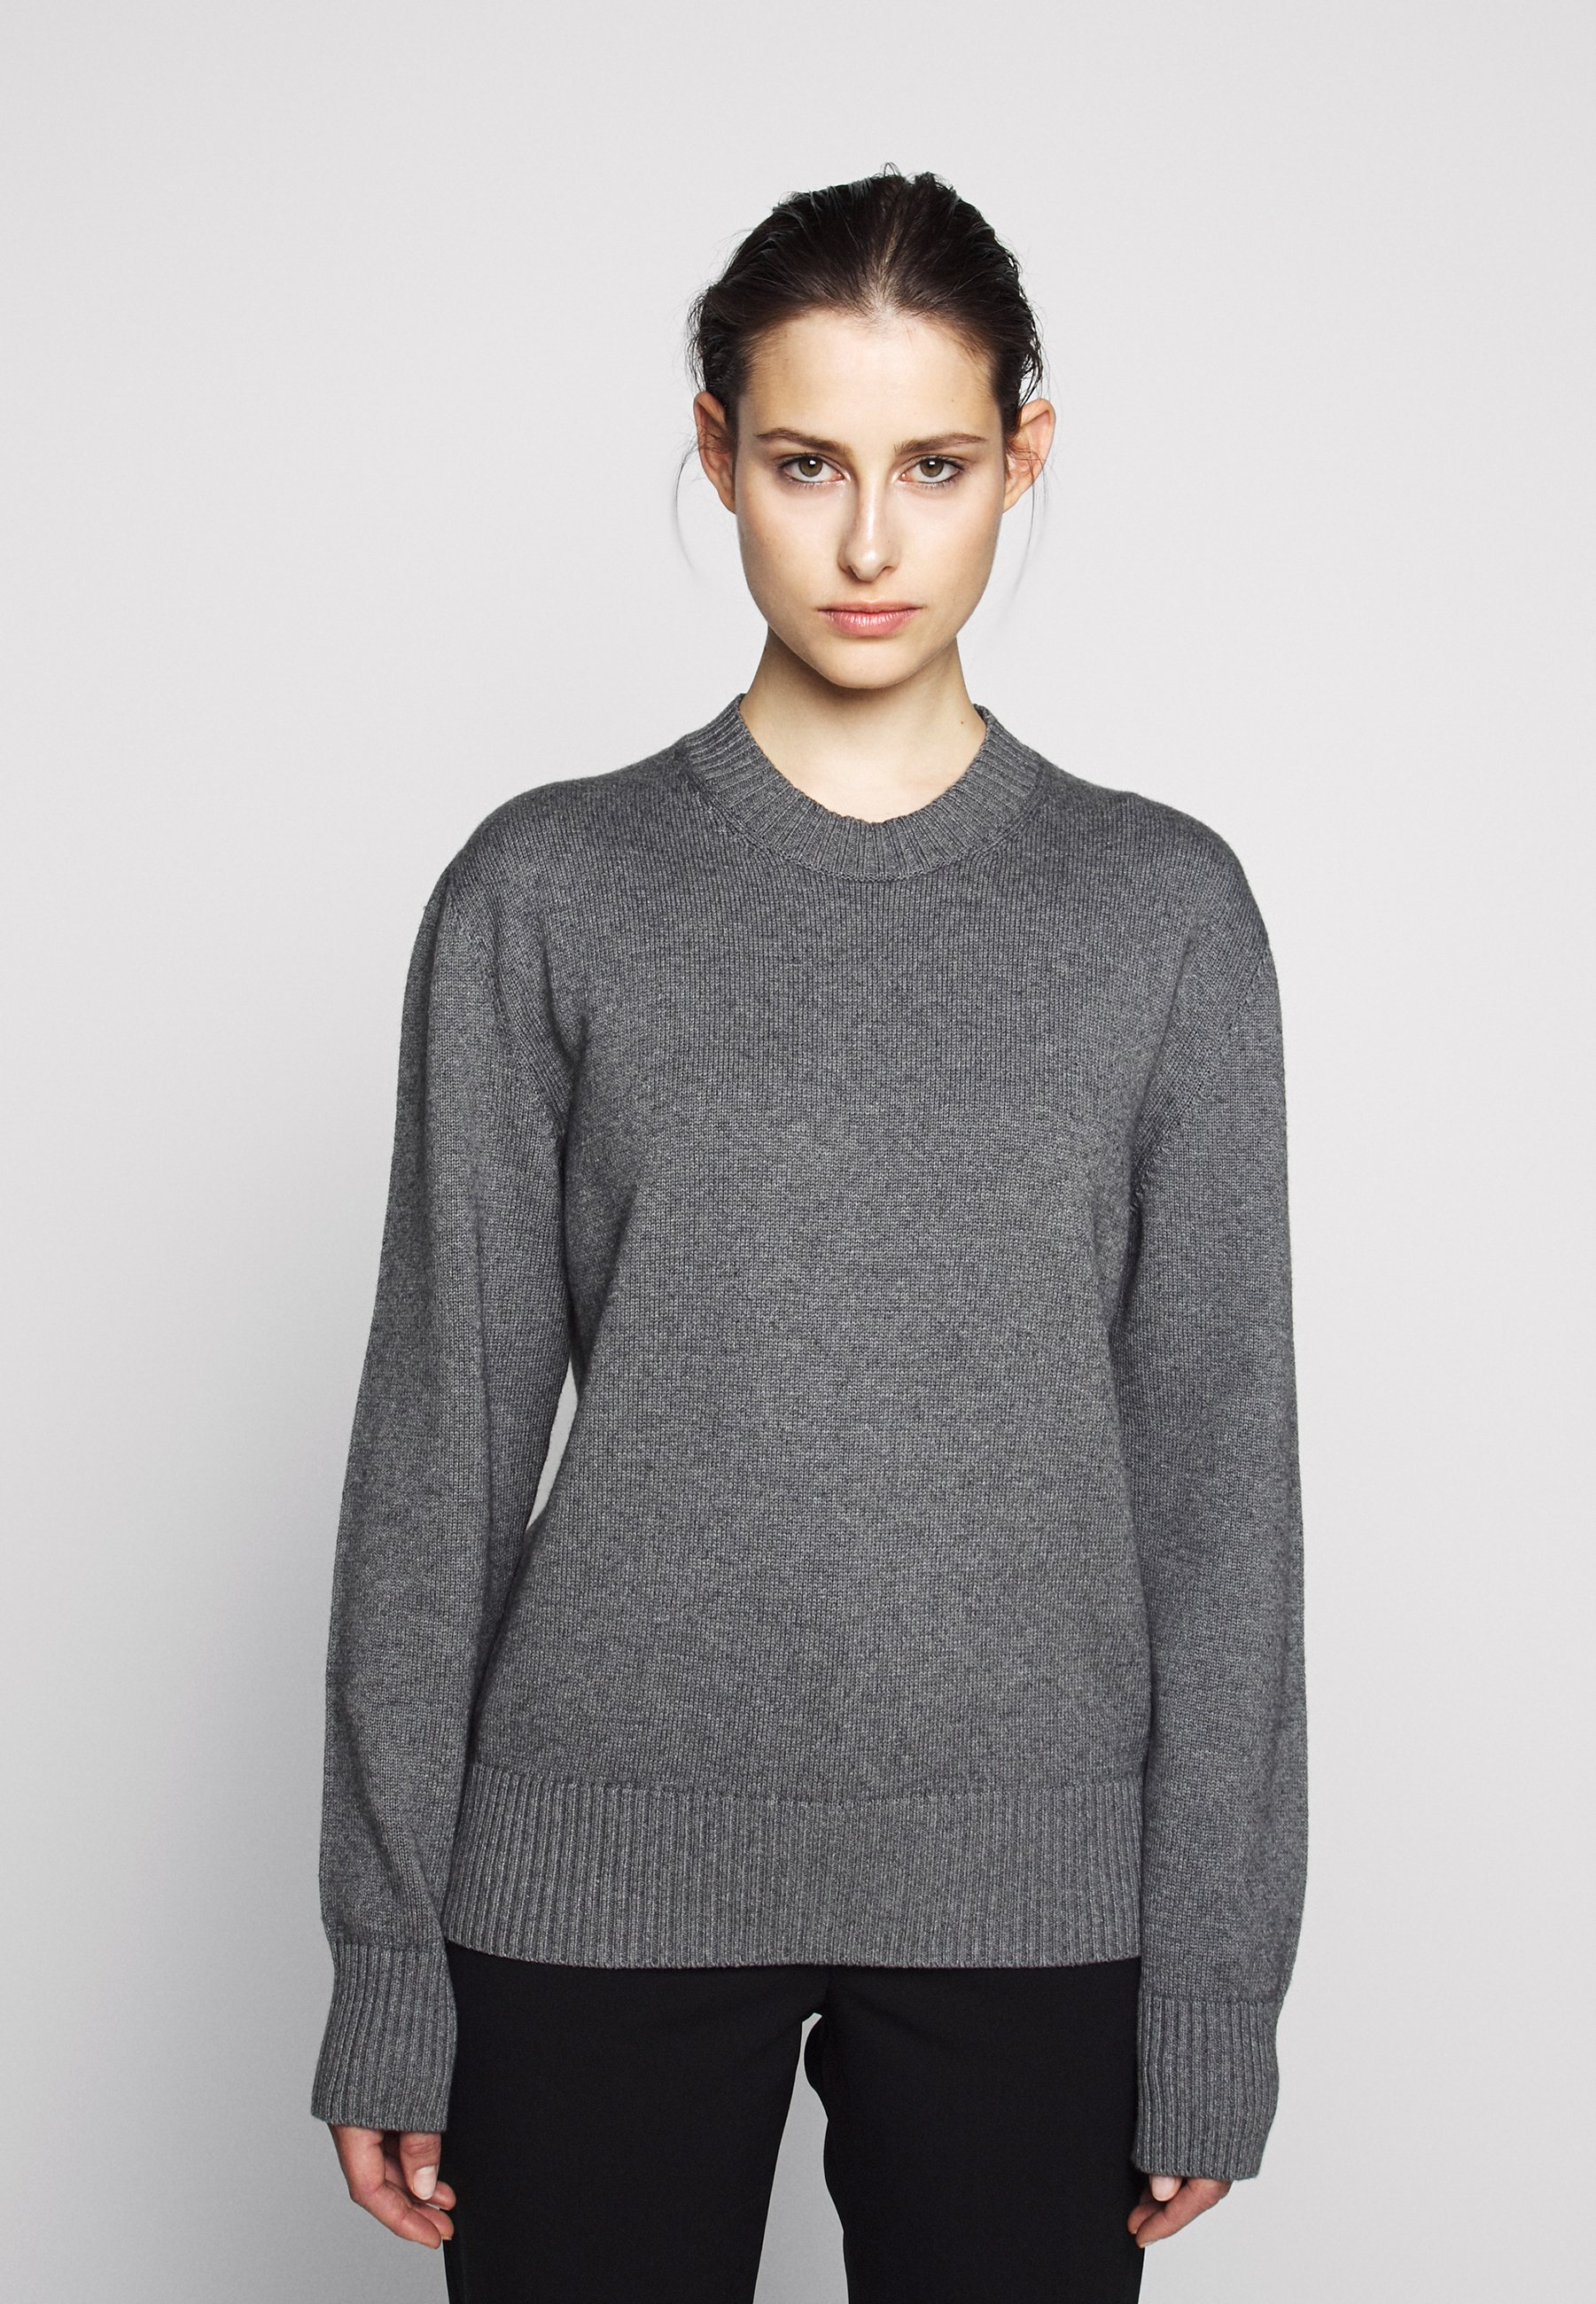 MM6 Maison Margiela CREW NECK - Pullover - medium grey - Pulls & Gilets Femme poRPu